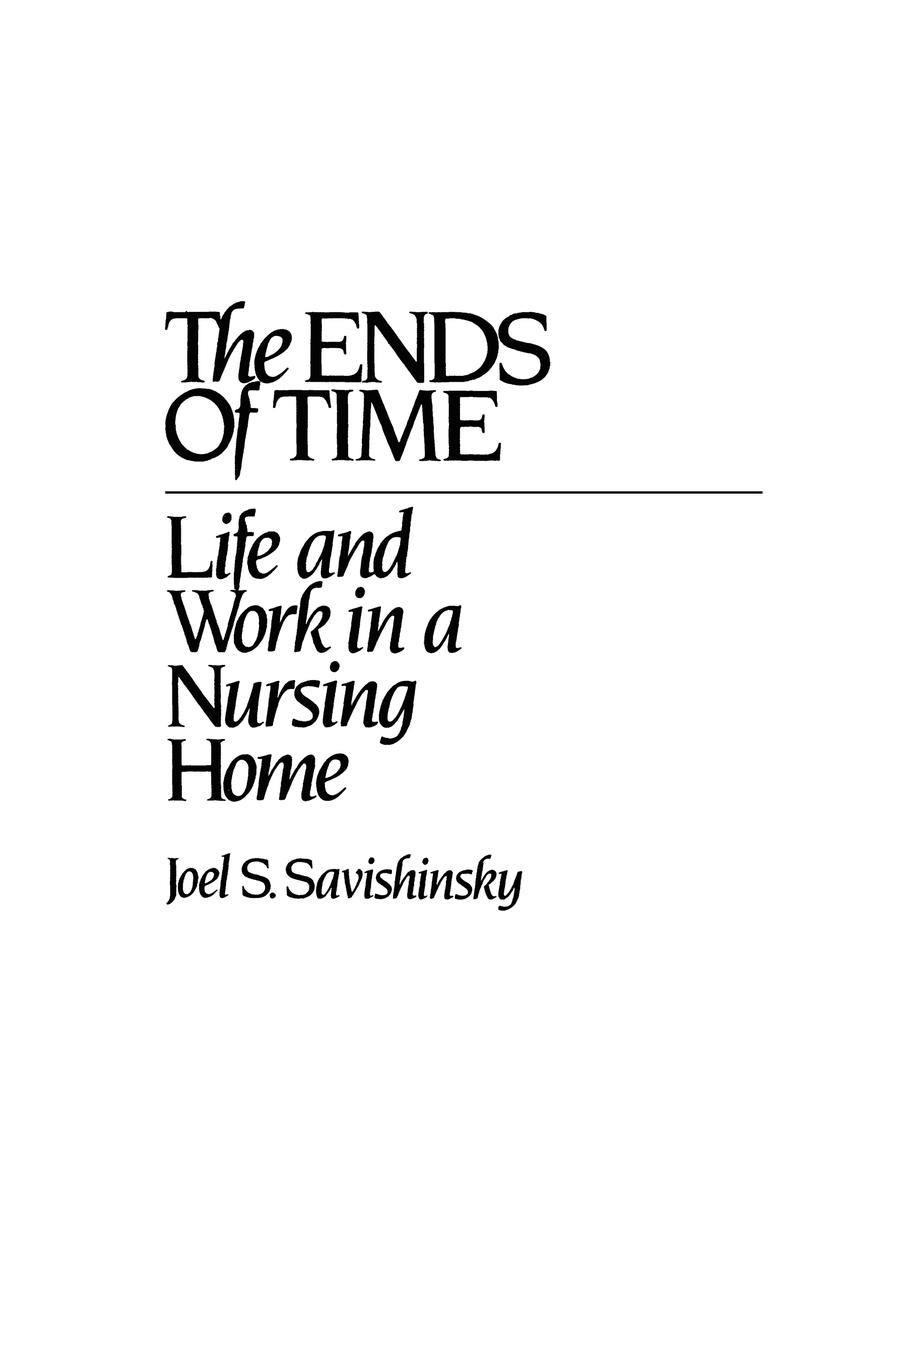 Joel S. Savishinsky The Ends of Time. Life and Work in a Nursing Home путешествие времени voyage of time life